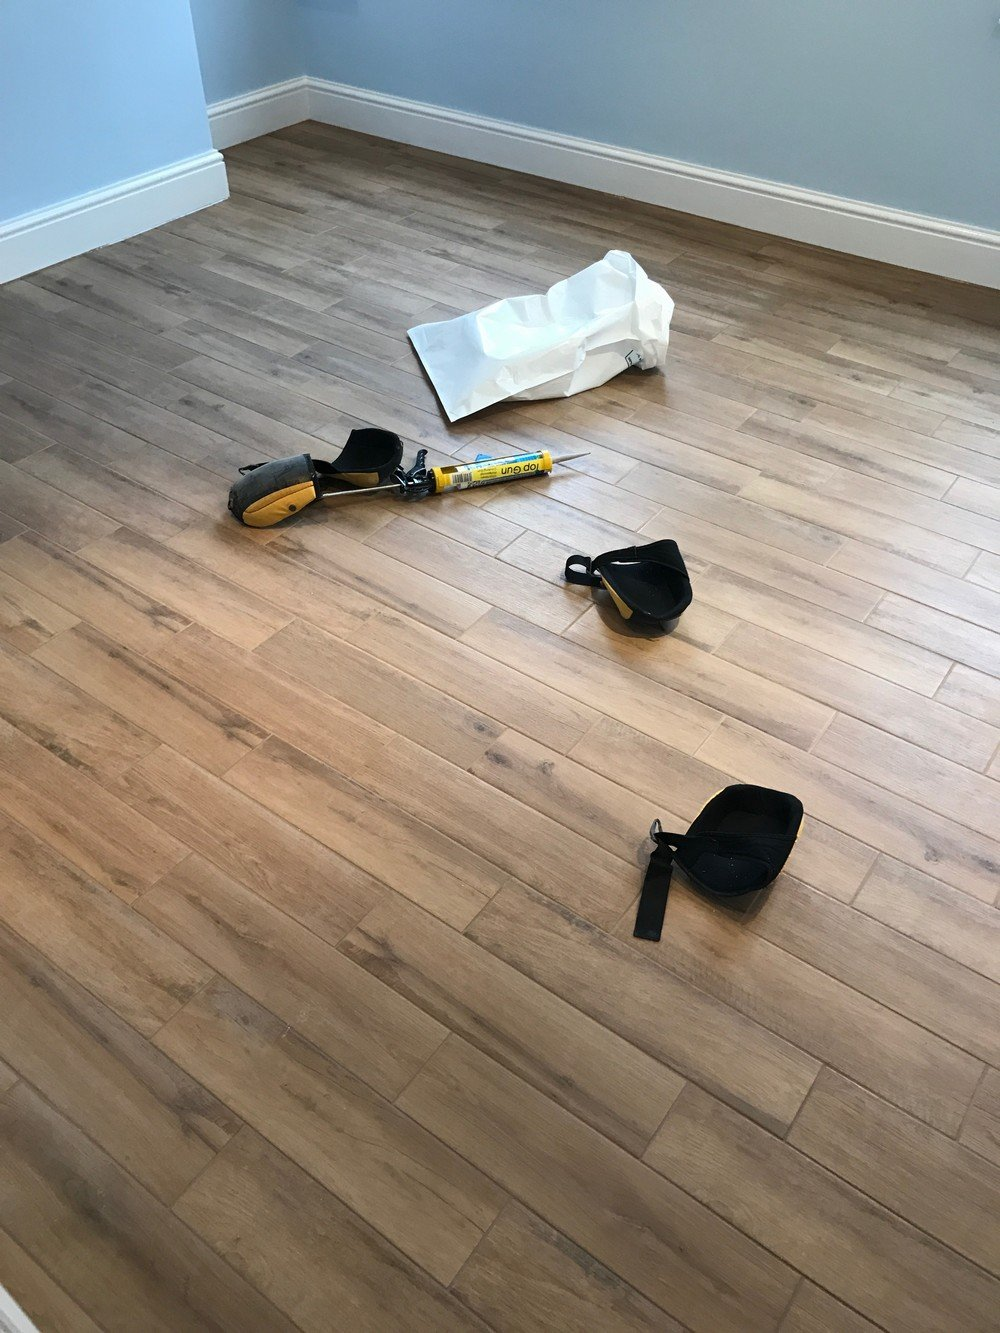 SW1V – Bathrooms, Kitchen, Flooring, Painting Decorating, Steels 8